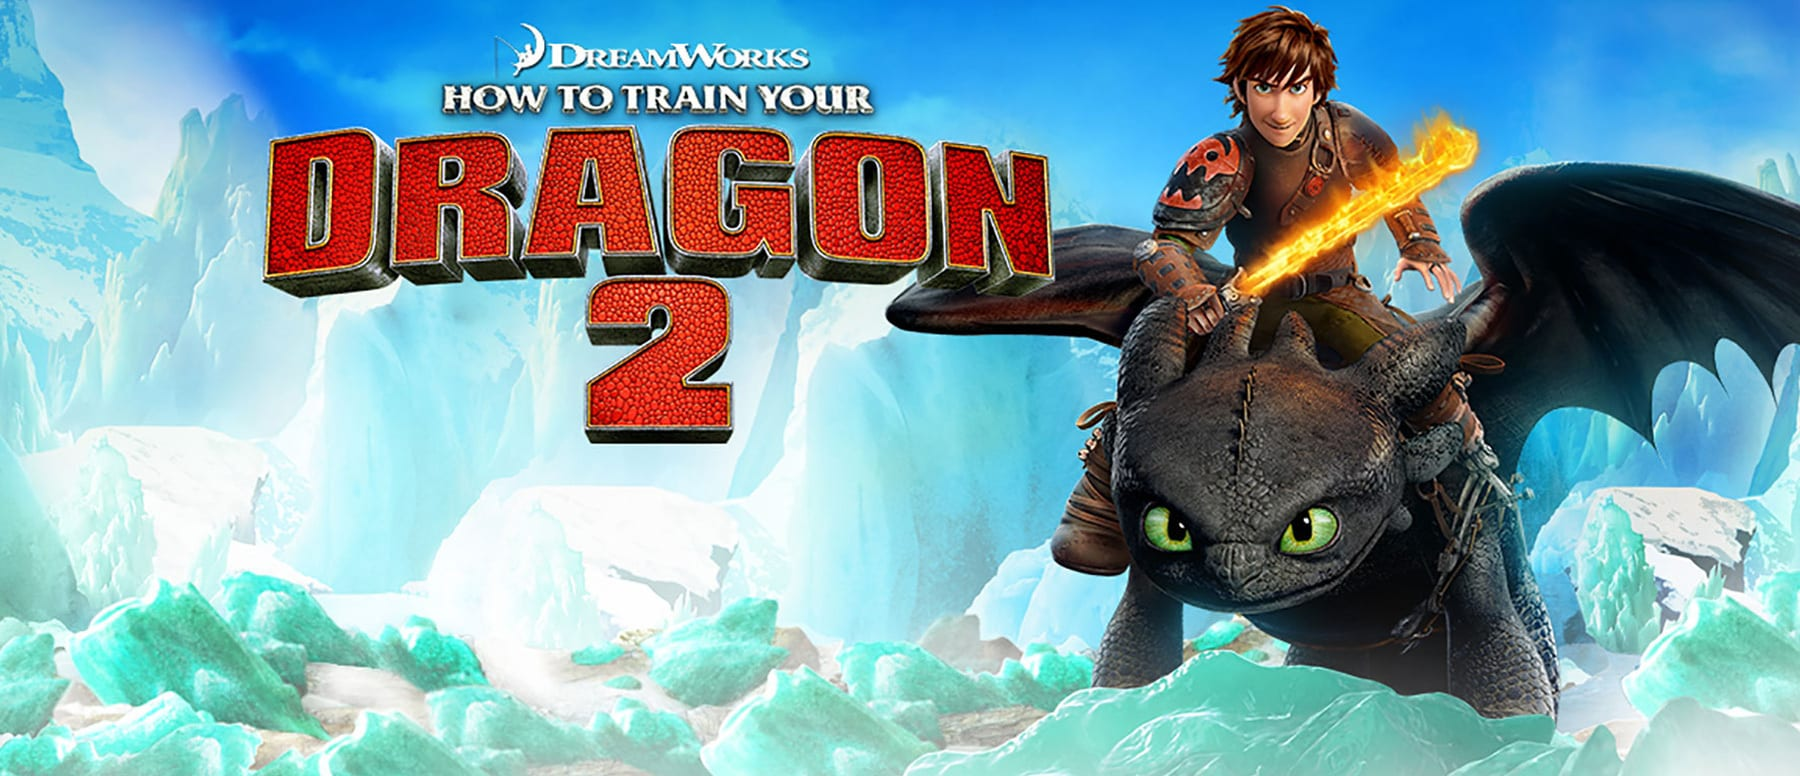 How to Train Your Dragon 2 Hero